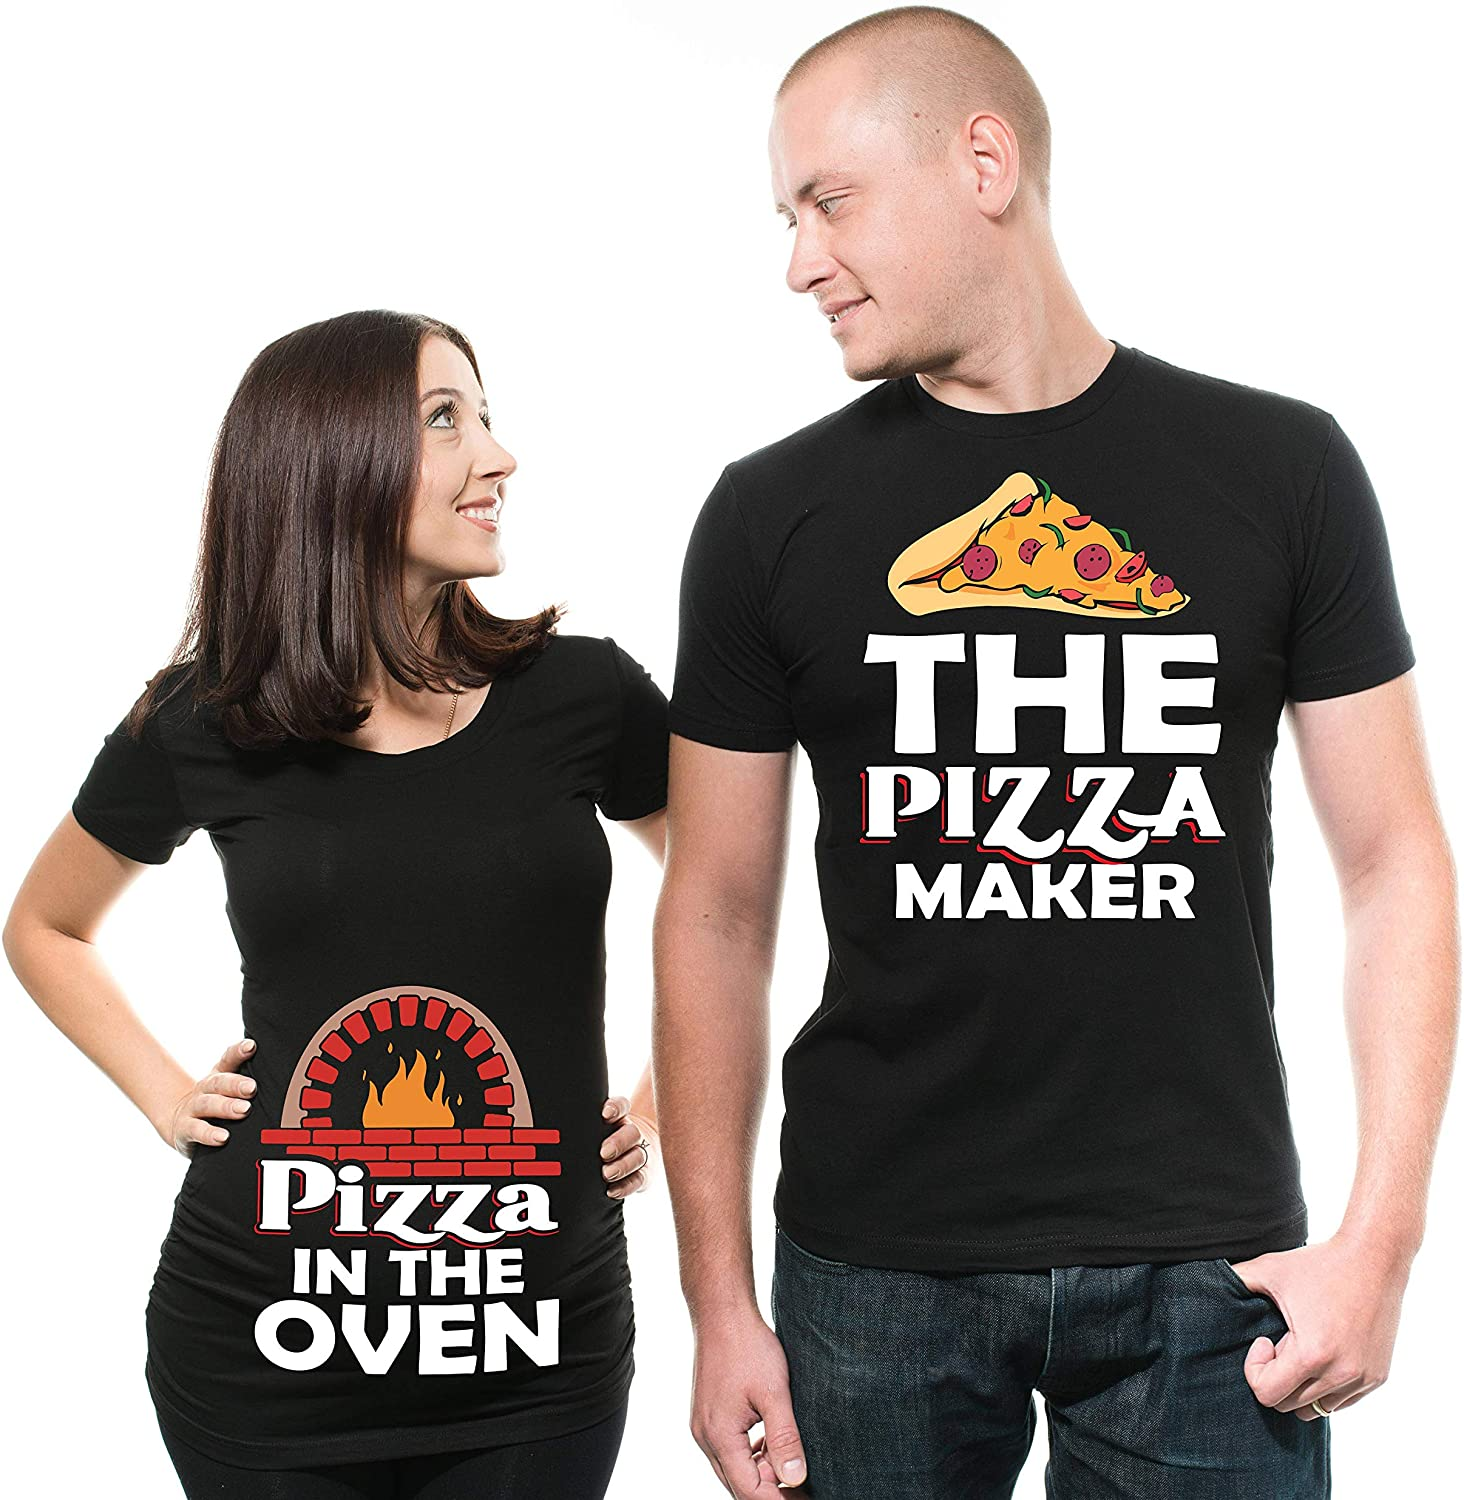 Couple Pregnancy Announcement T-Shirts Dad Maternity Pizza Maker Funny True Pregnancy Couple Matching Tee Shirts